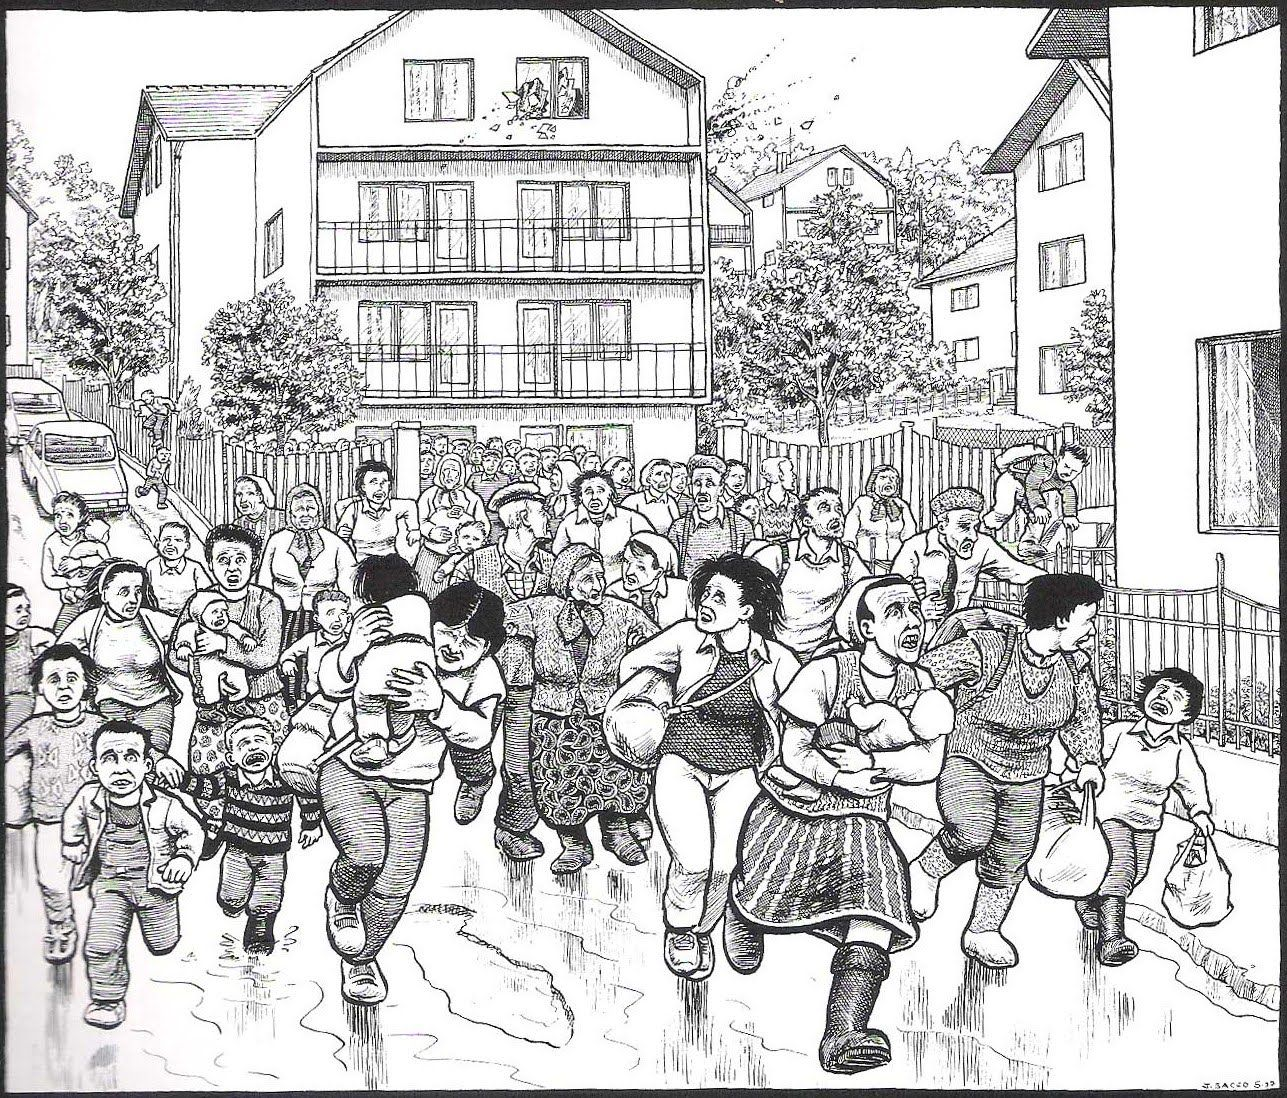 Joe Sacco A Drawing Of The People Running Away From Dangers And Trying To Protect Themselves Their Families There Were Few Places Hide Once